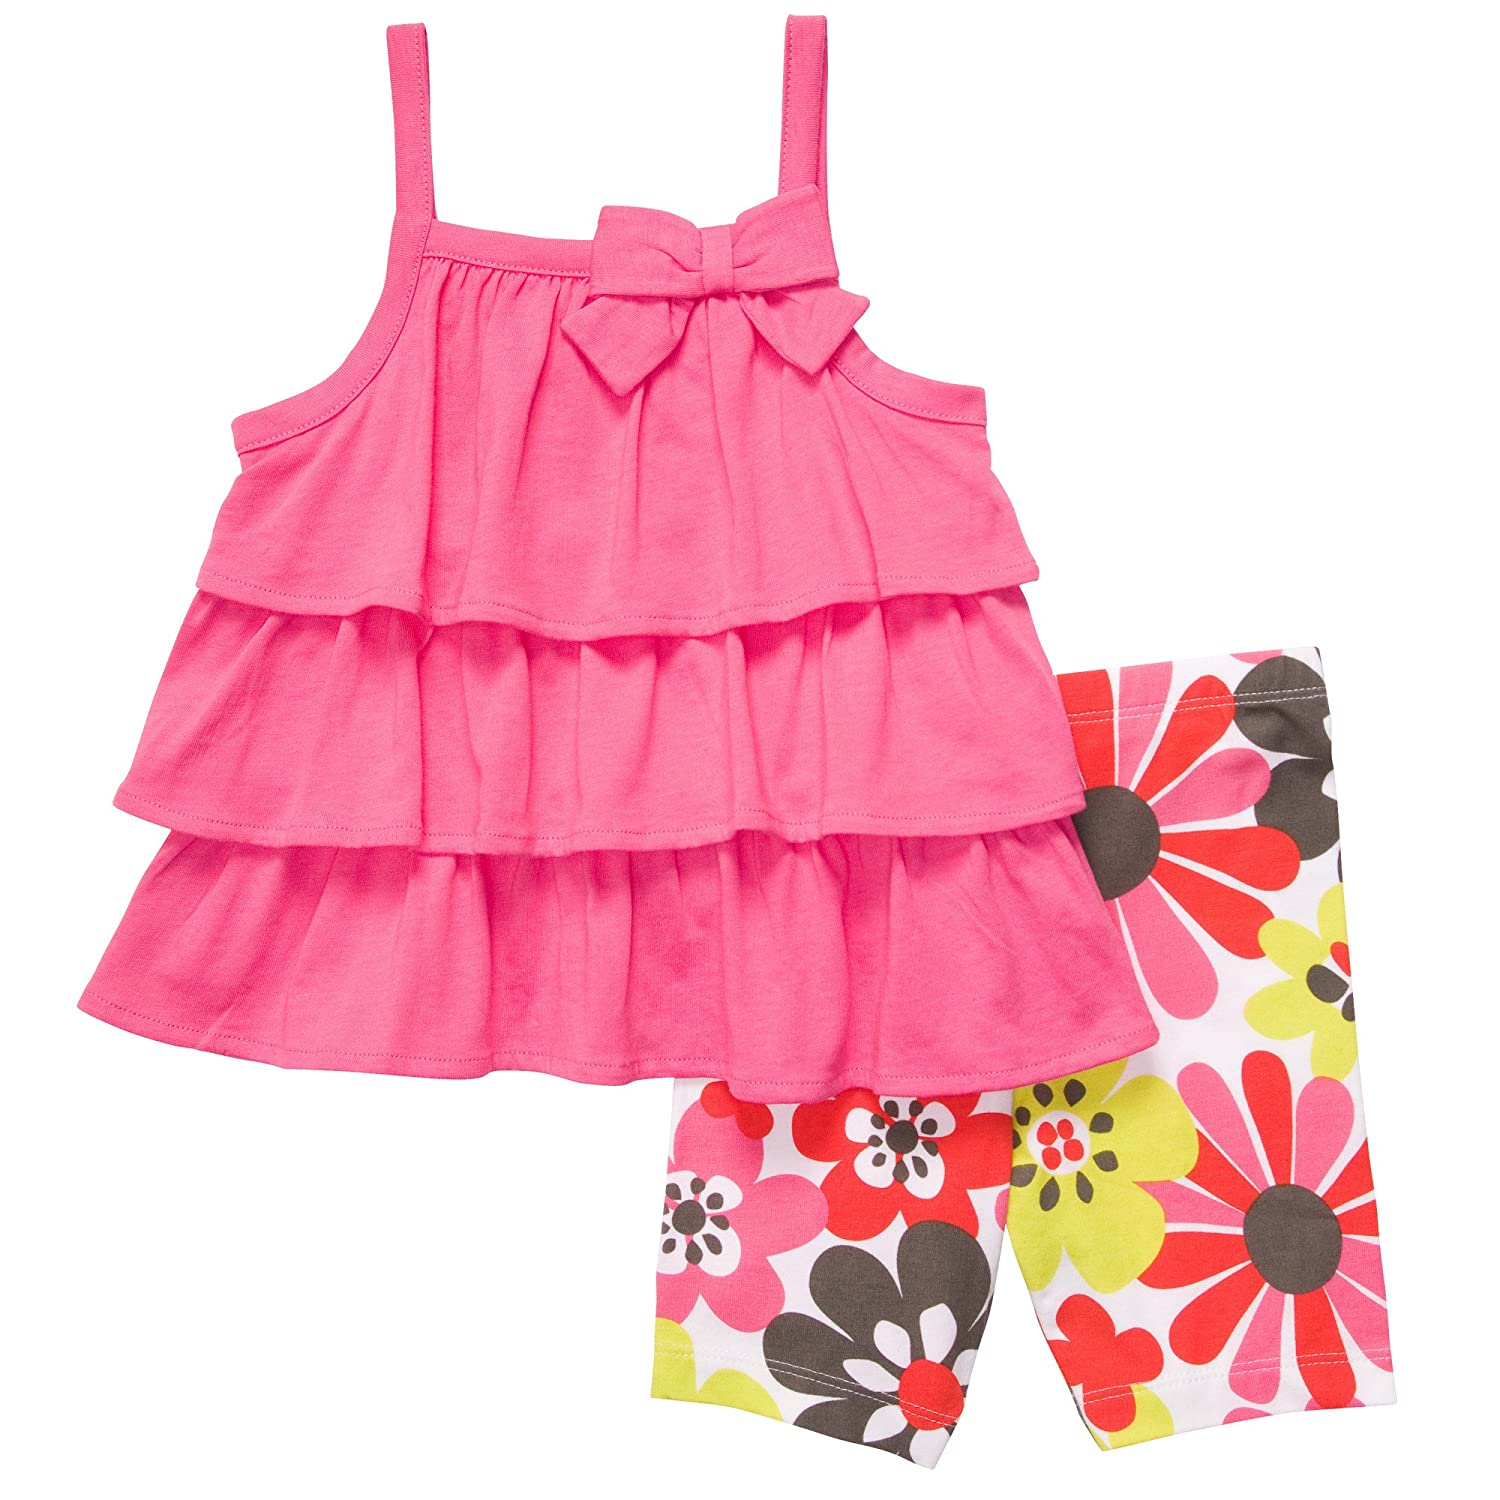 Floral Shorts Set Carters Baby Girls 3 Months Pink Tiered Tunic